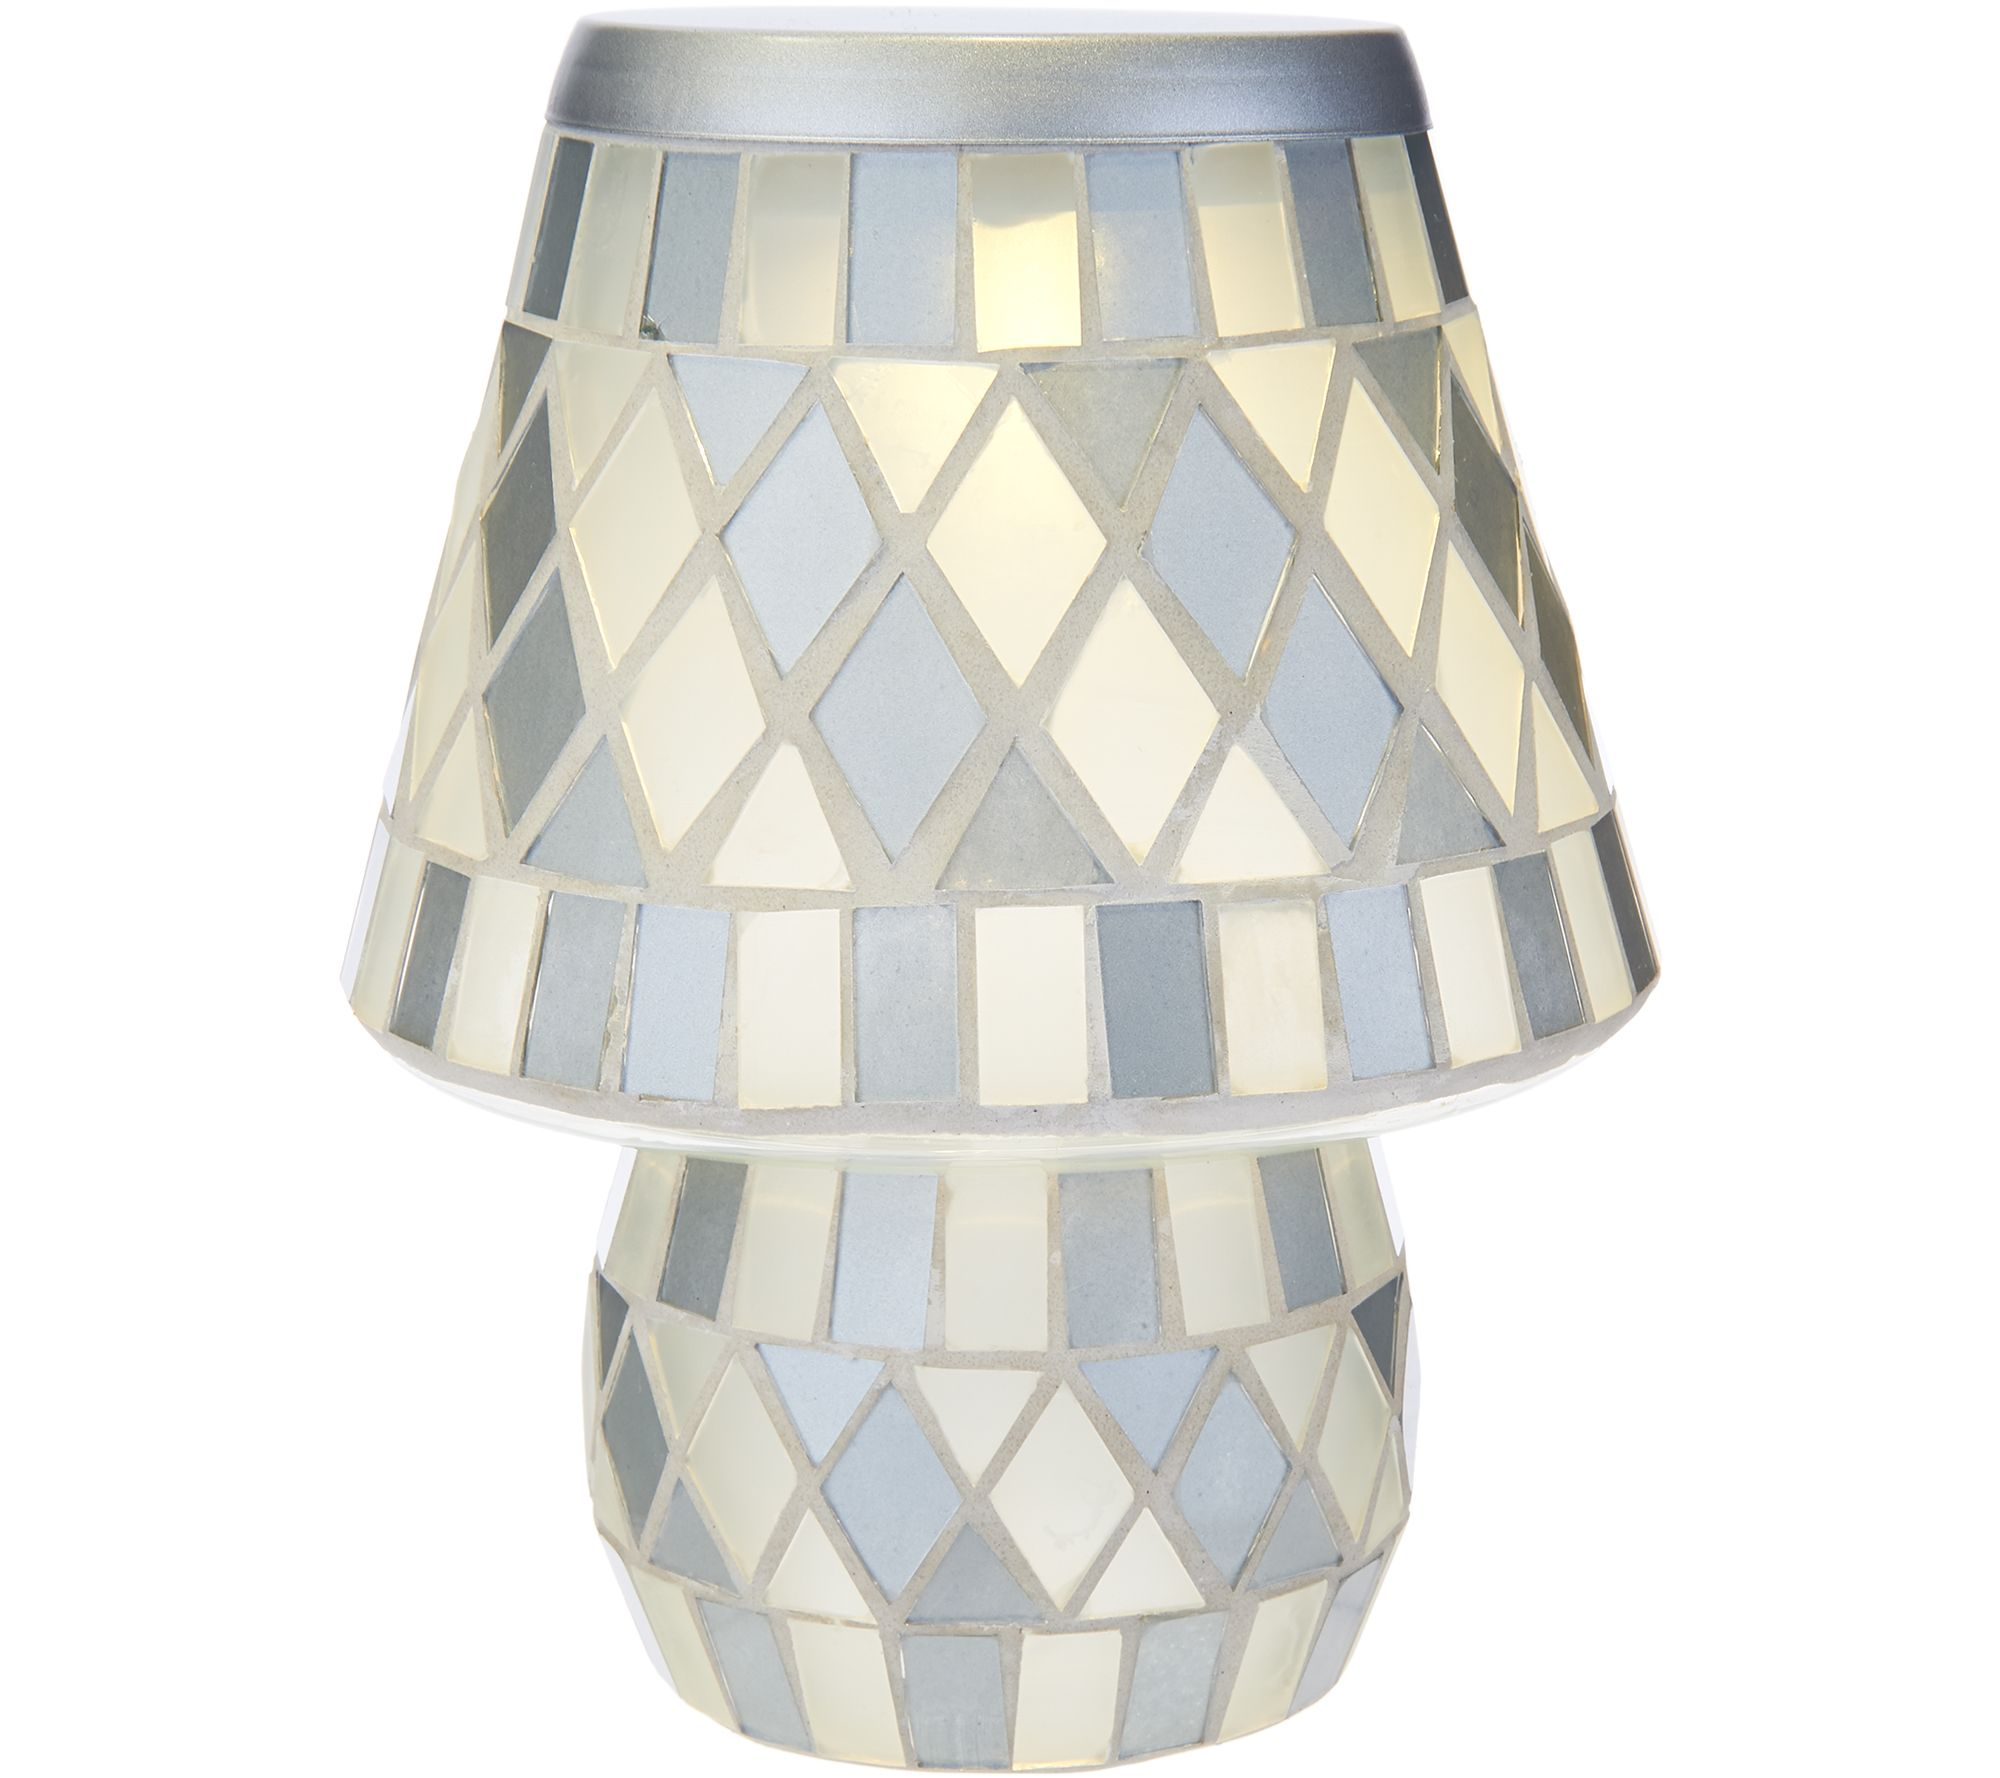 Glass Tile Diamond Pattern Battery Operated Lamp by Valerie   H209854Tiffany Style Lamps   Indoor Lighting   For the Home   QVC com. Tiffany Style Lamps Qvc Uk. Home Design Ideas